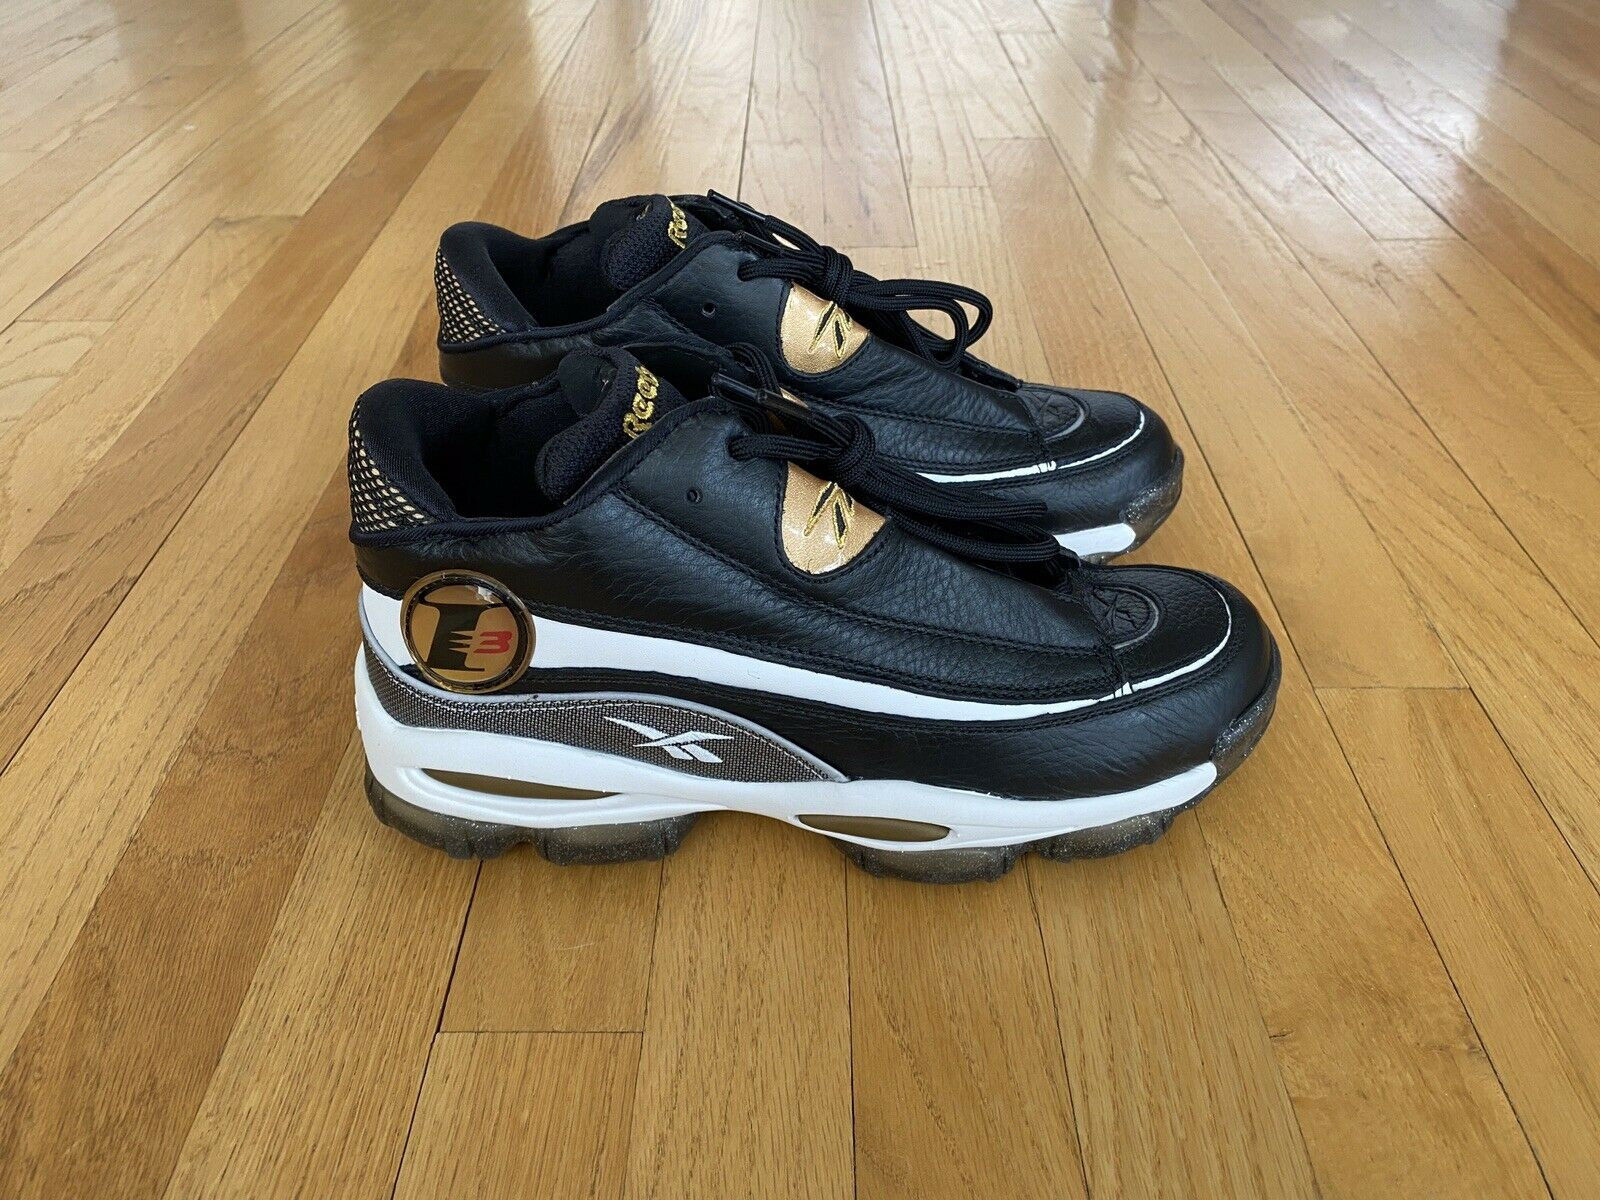 Reebok Answer DMX 10 10th Anniversary Black